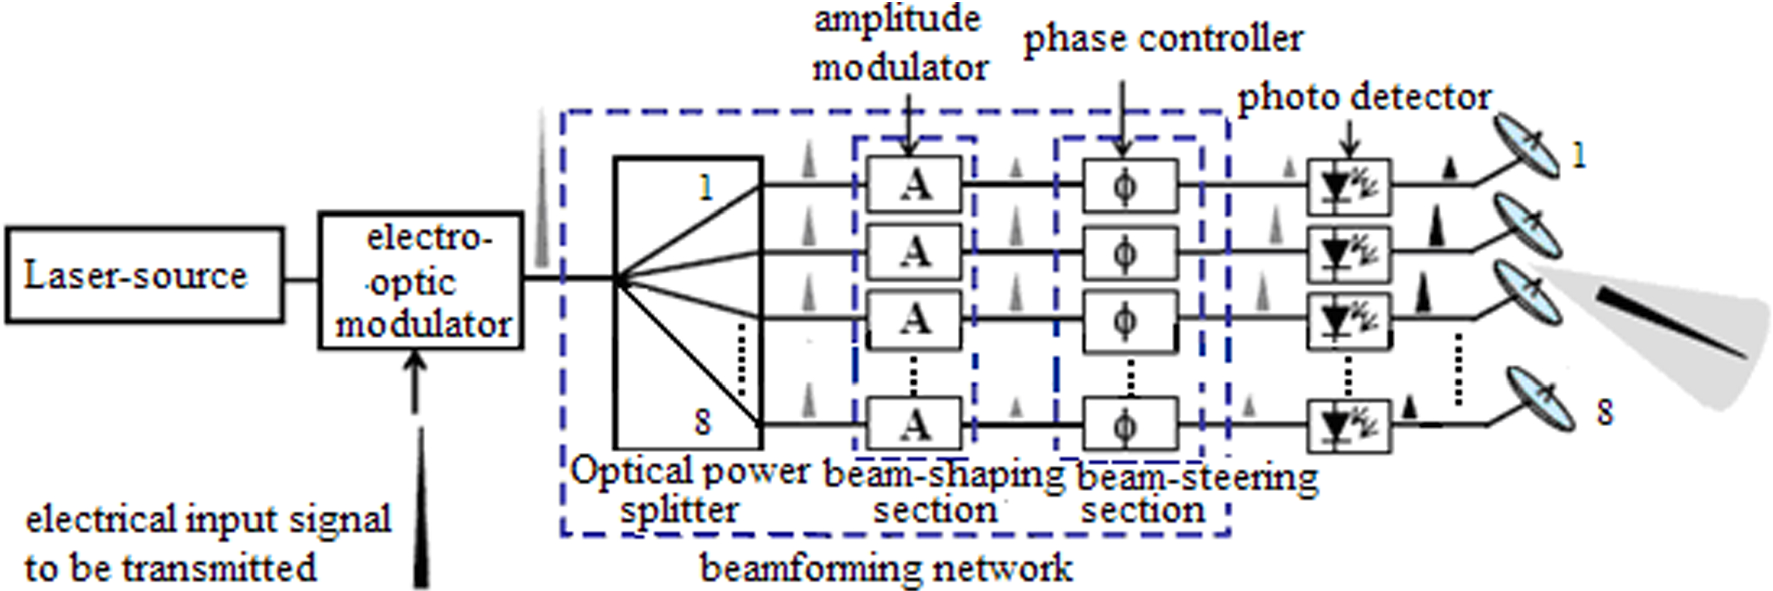 Performance analysis and comparison of optical signal